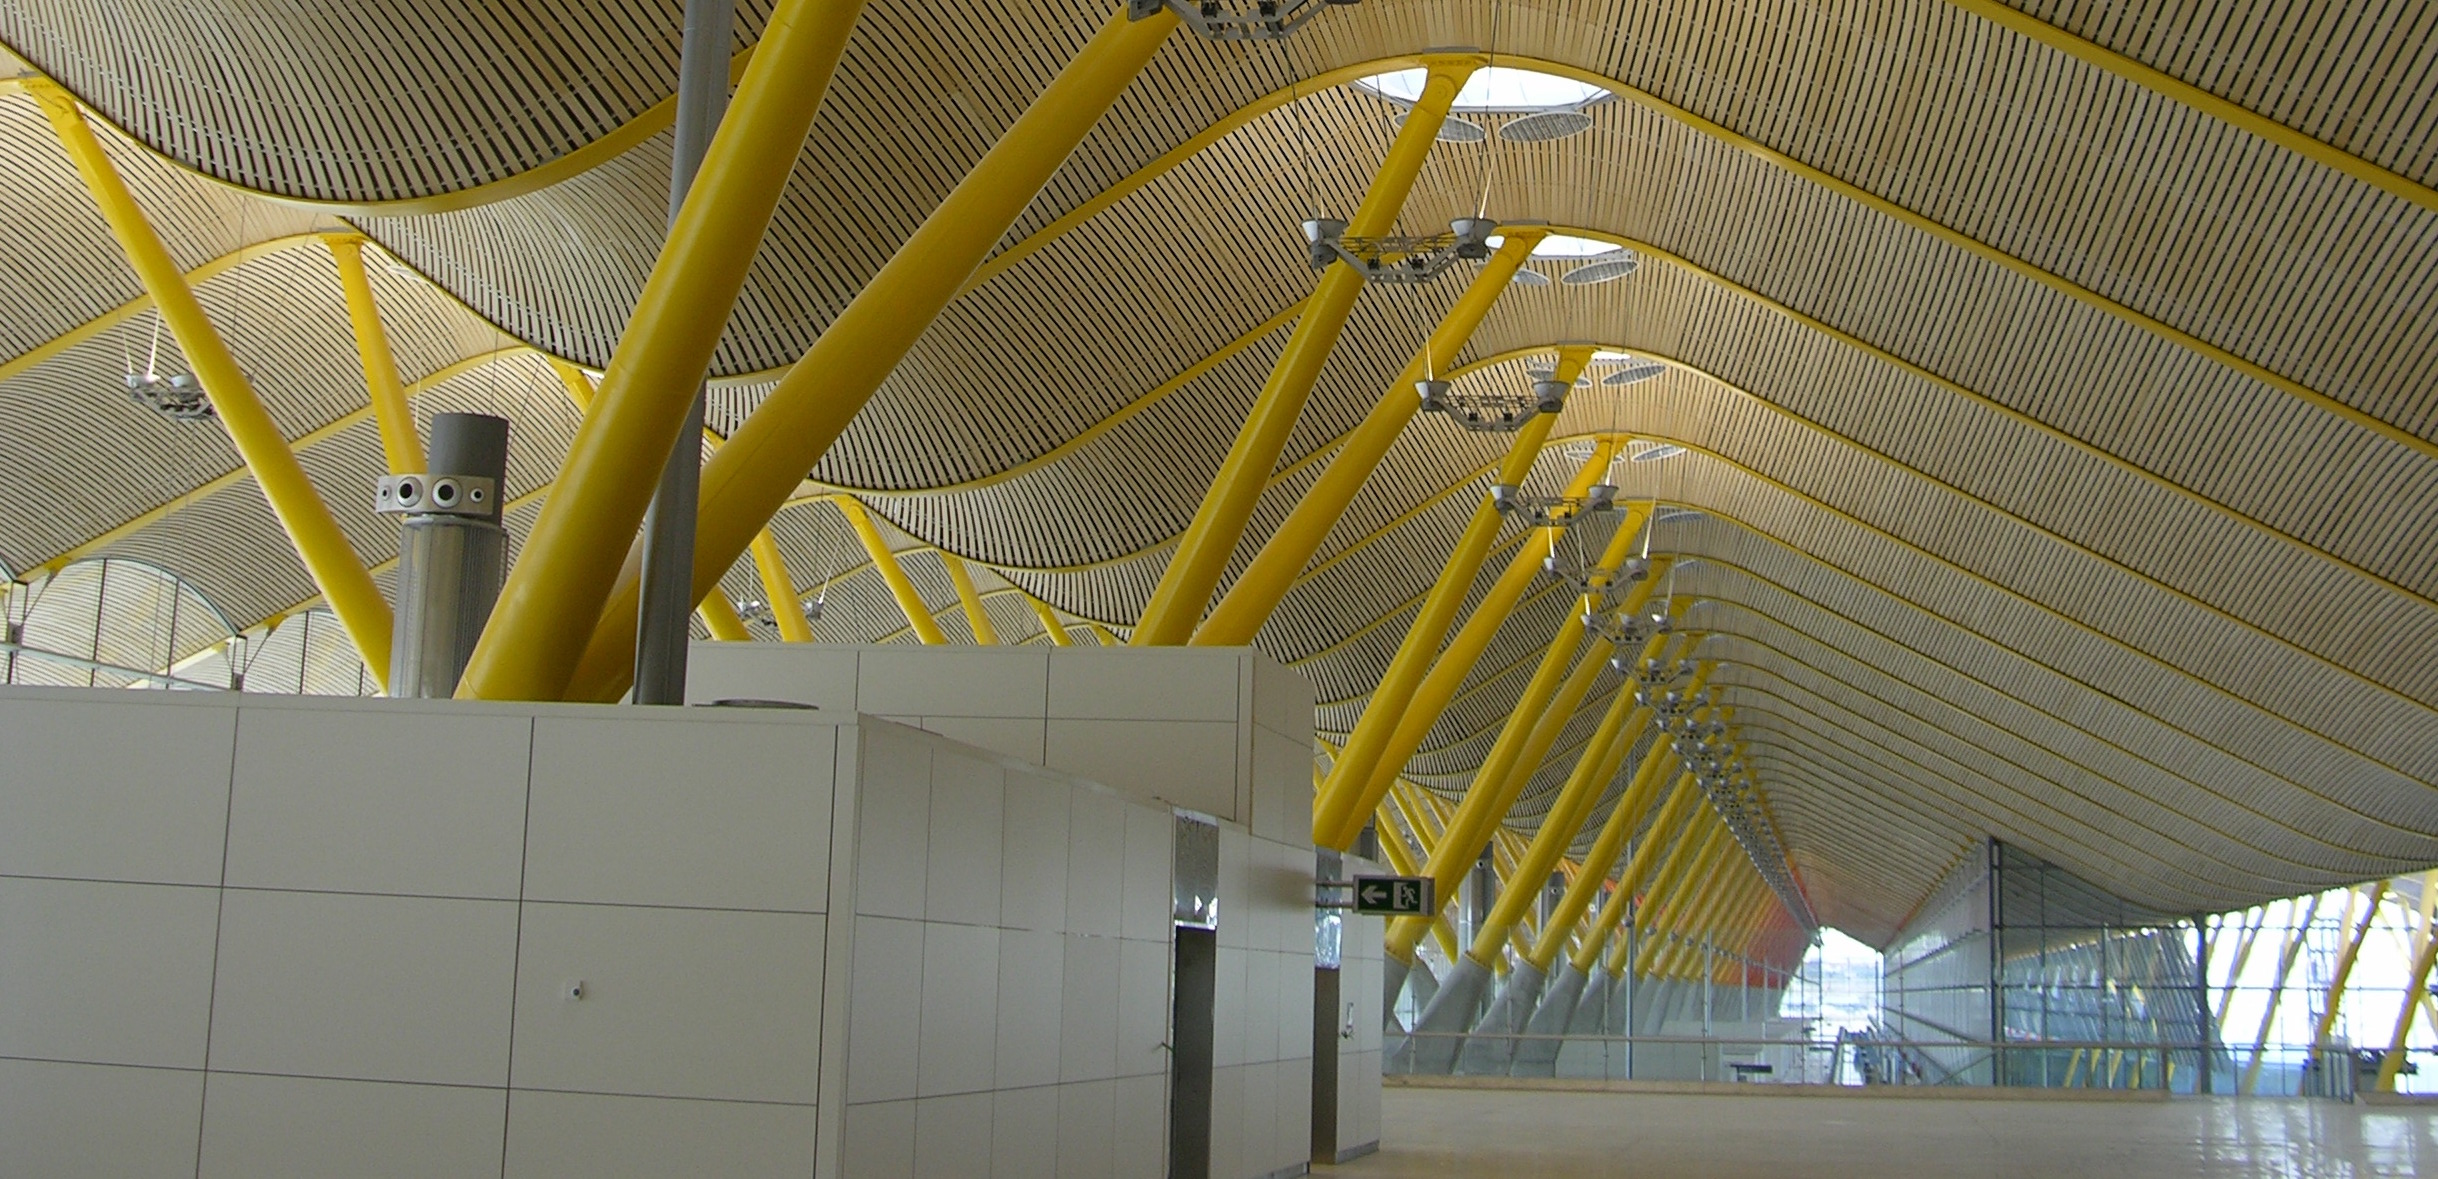 barajas airport tensile structure